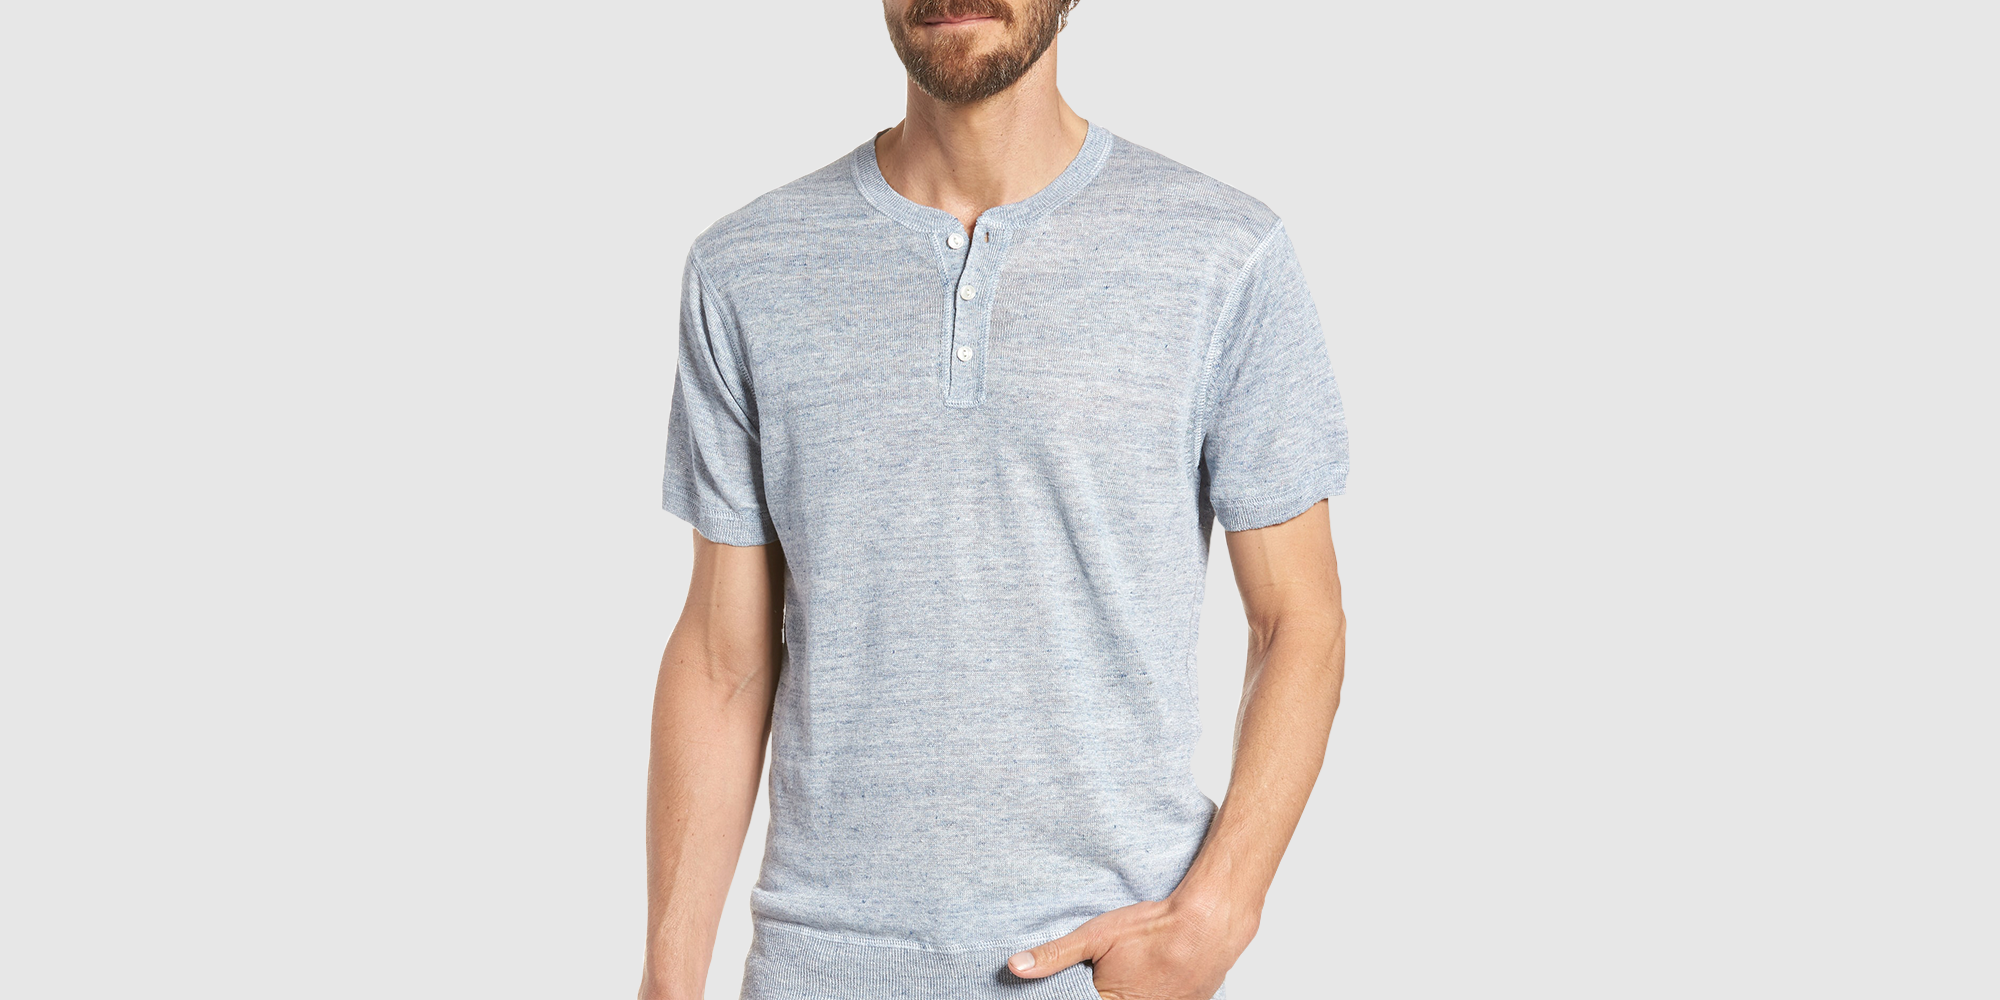 The 11 Best Henley Shirts for Men to Wear This Fall